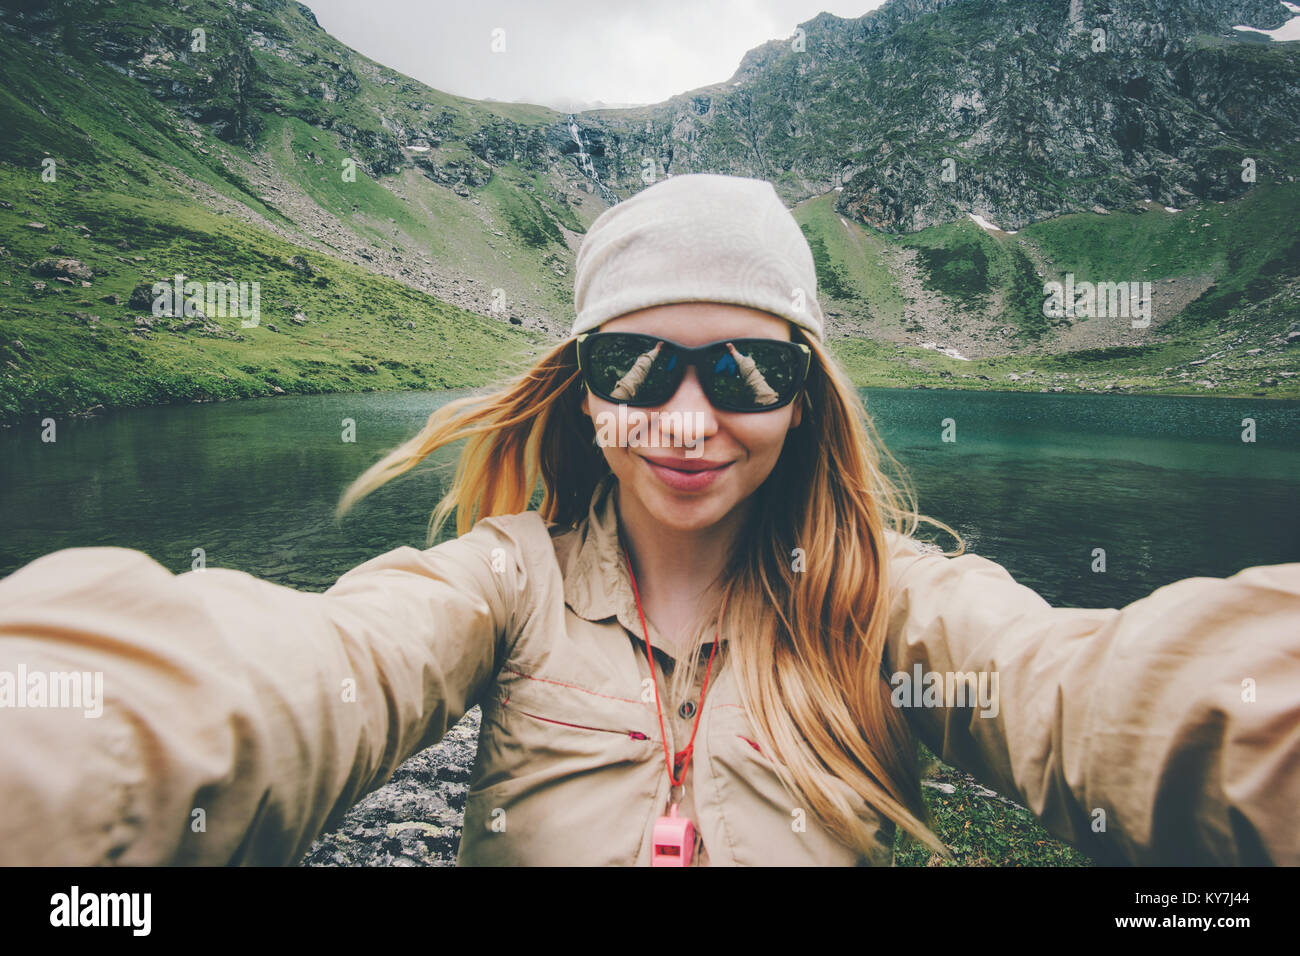 Woman traveler taking selfie hiking in mountains Travel Lifestyle adventure concept active summer vacations outdoor - Stock Image